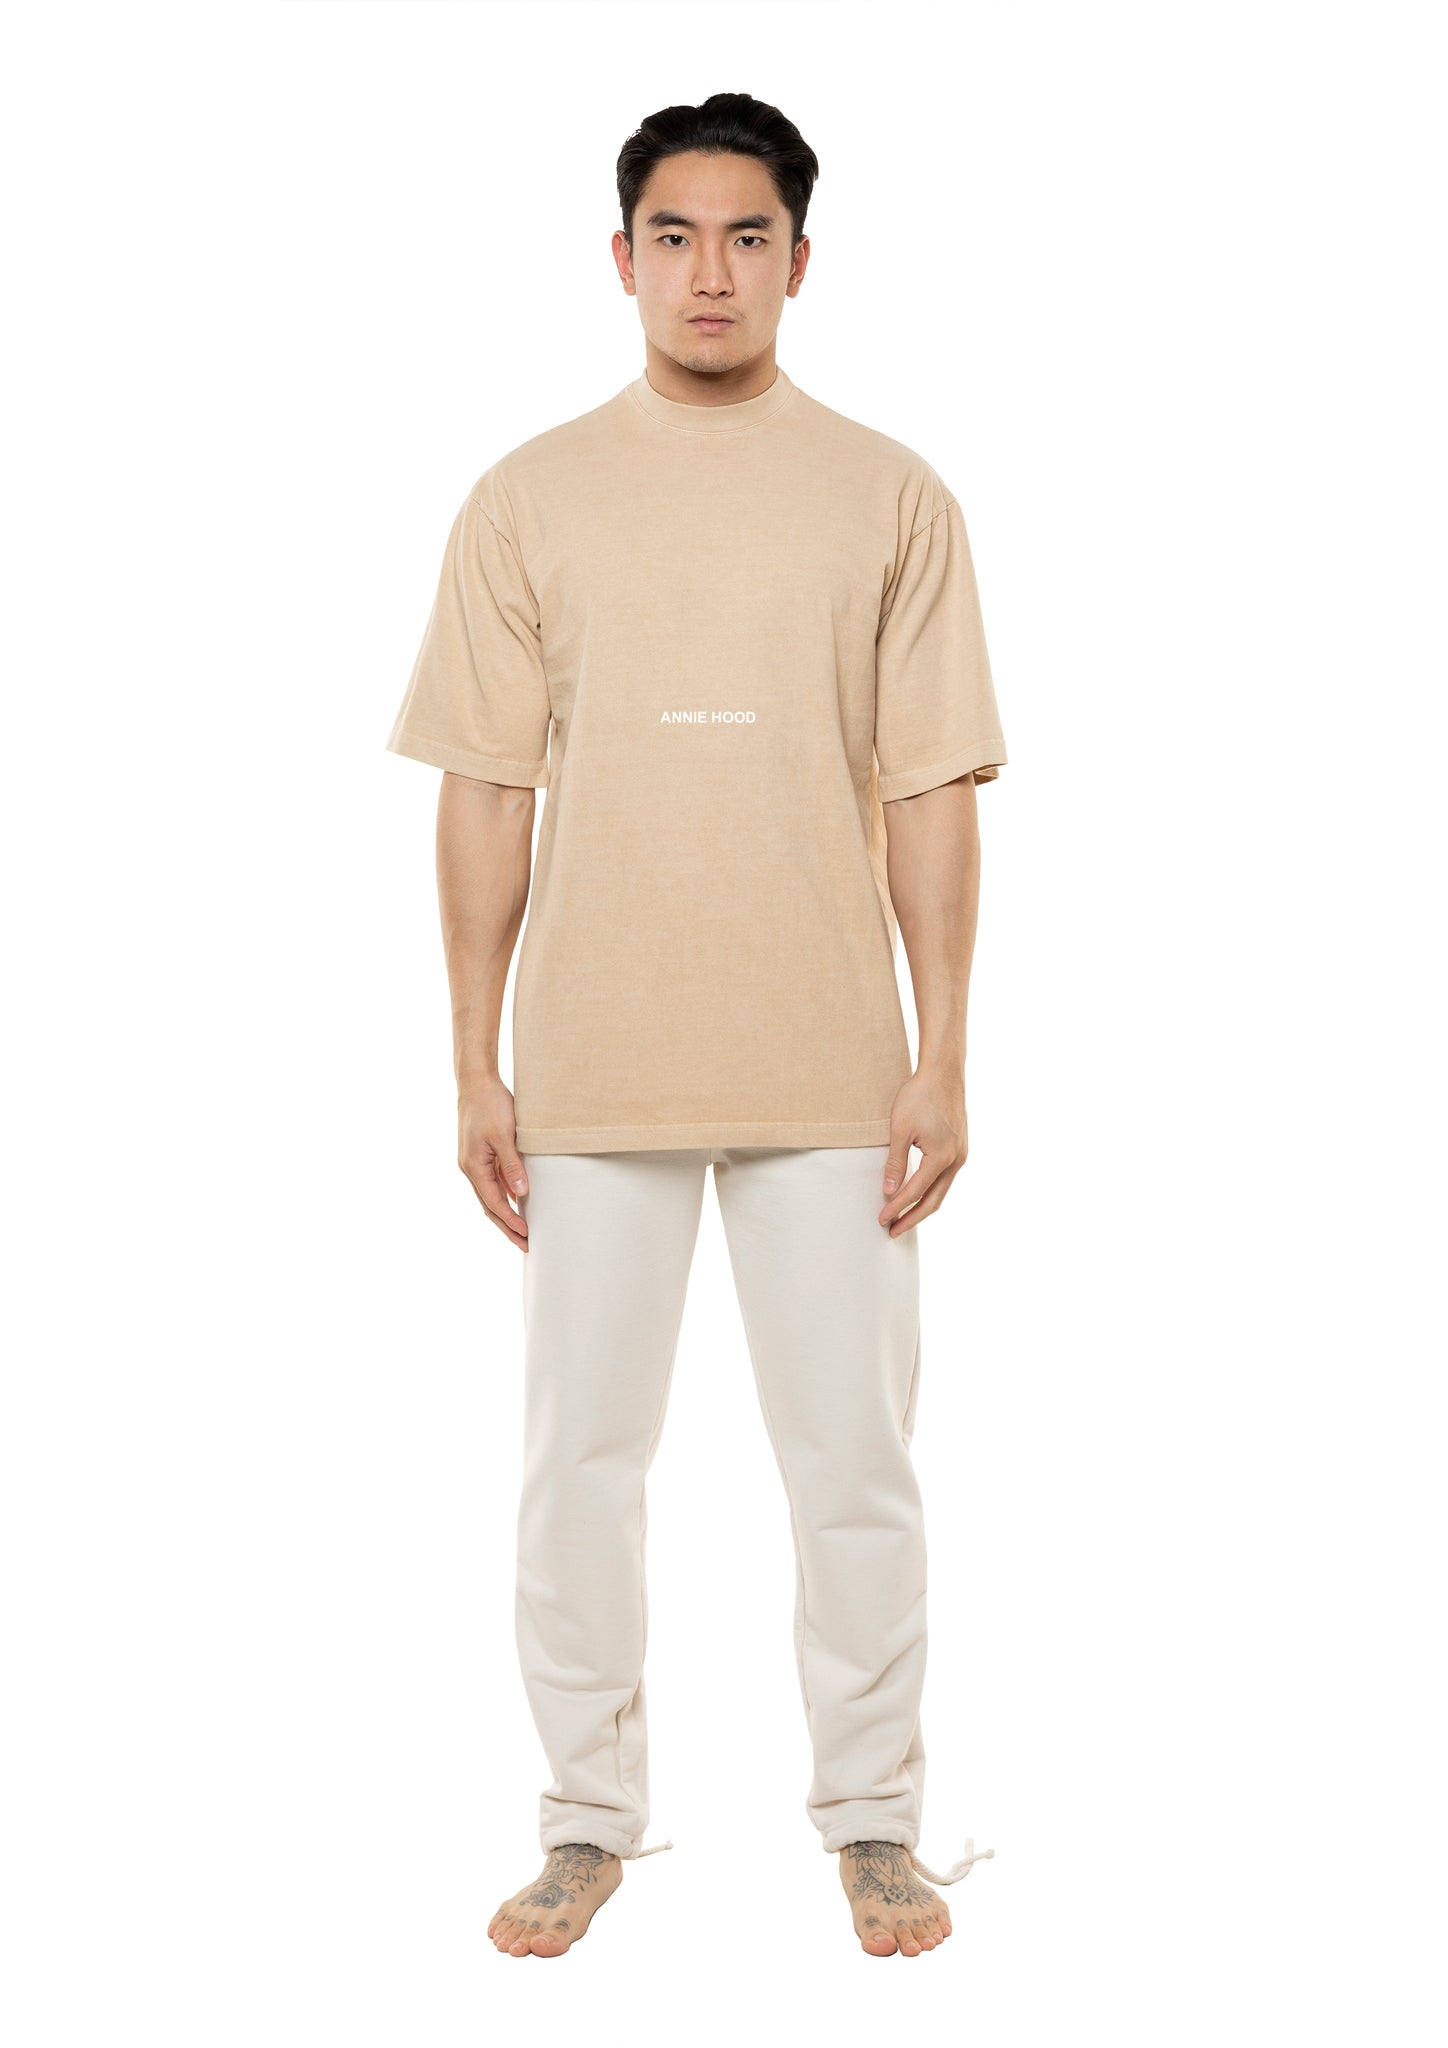 AH ESSENTIAL TSHIRT - WASHED BEIGE *AVAILABLE 01/DEC*